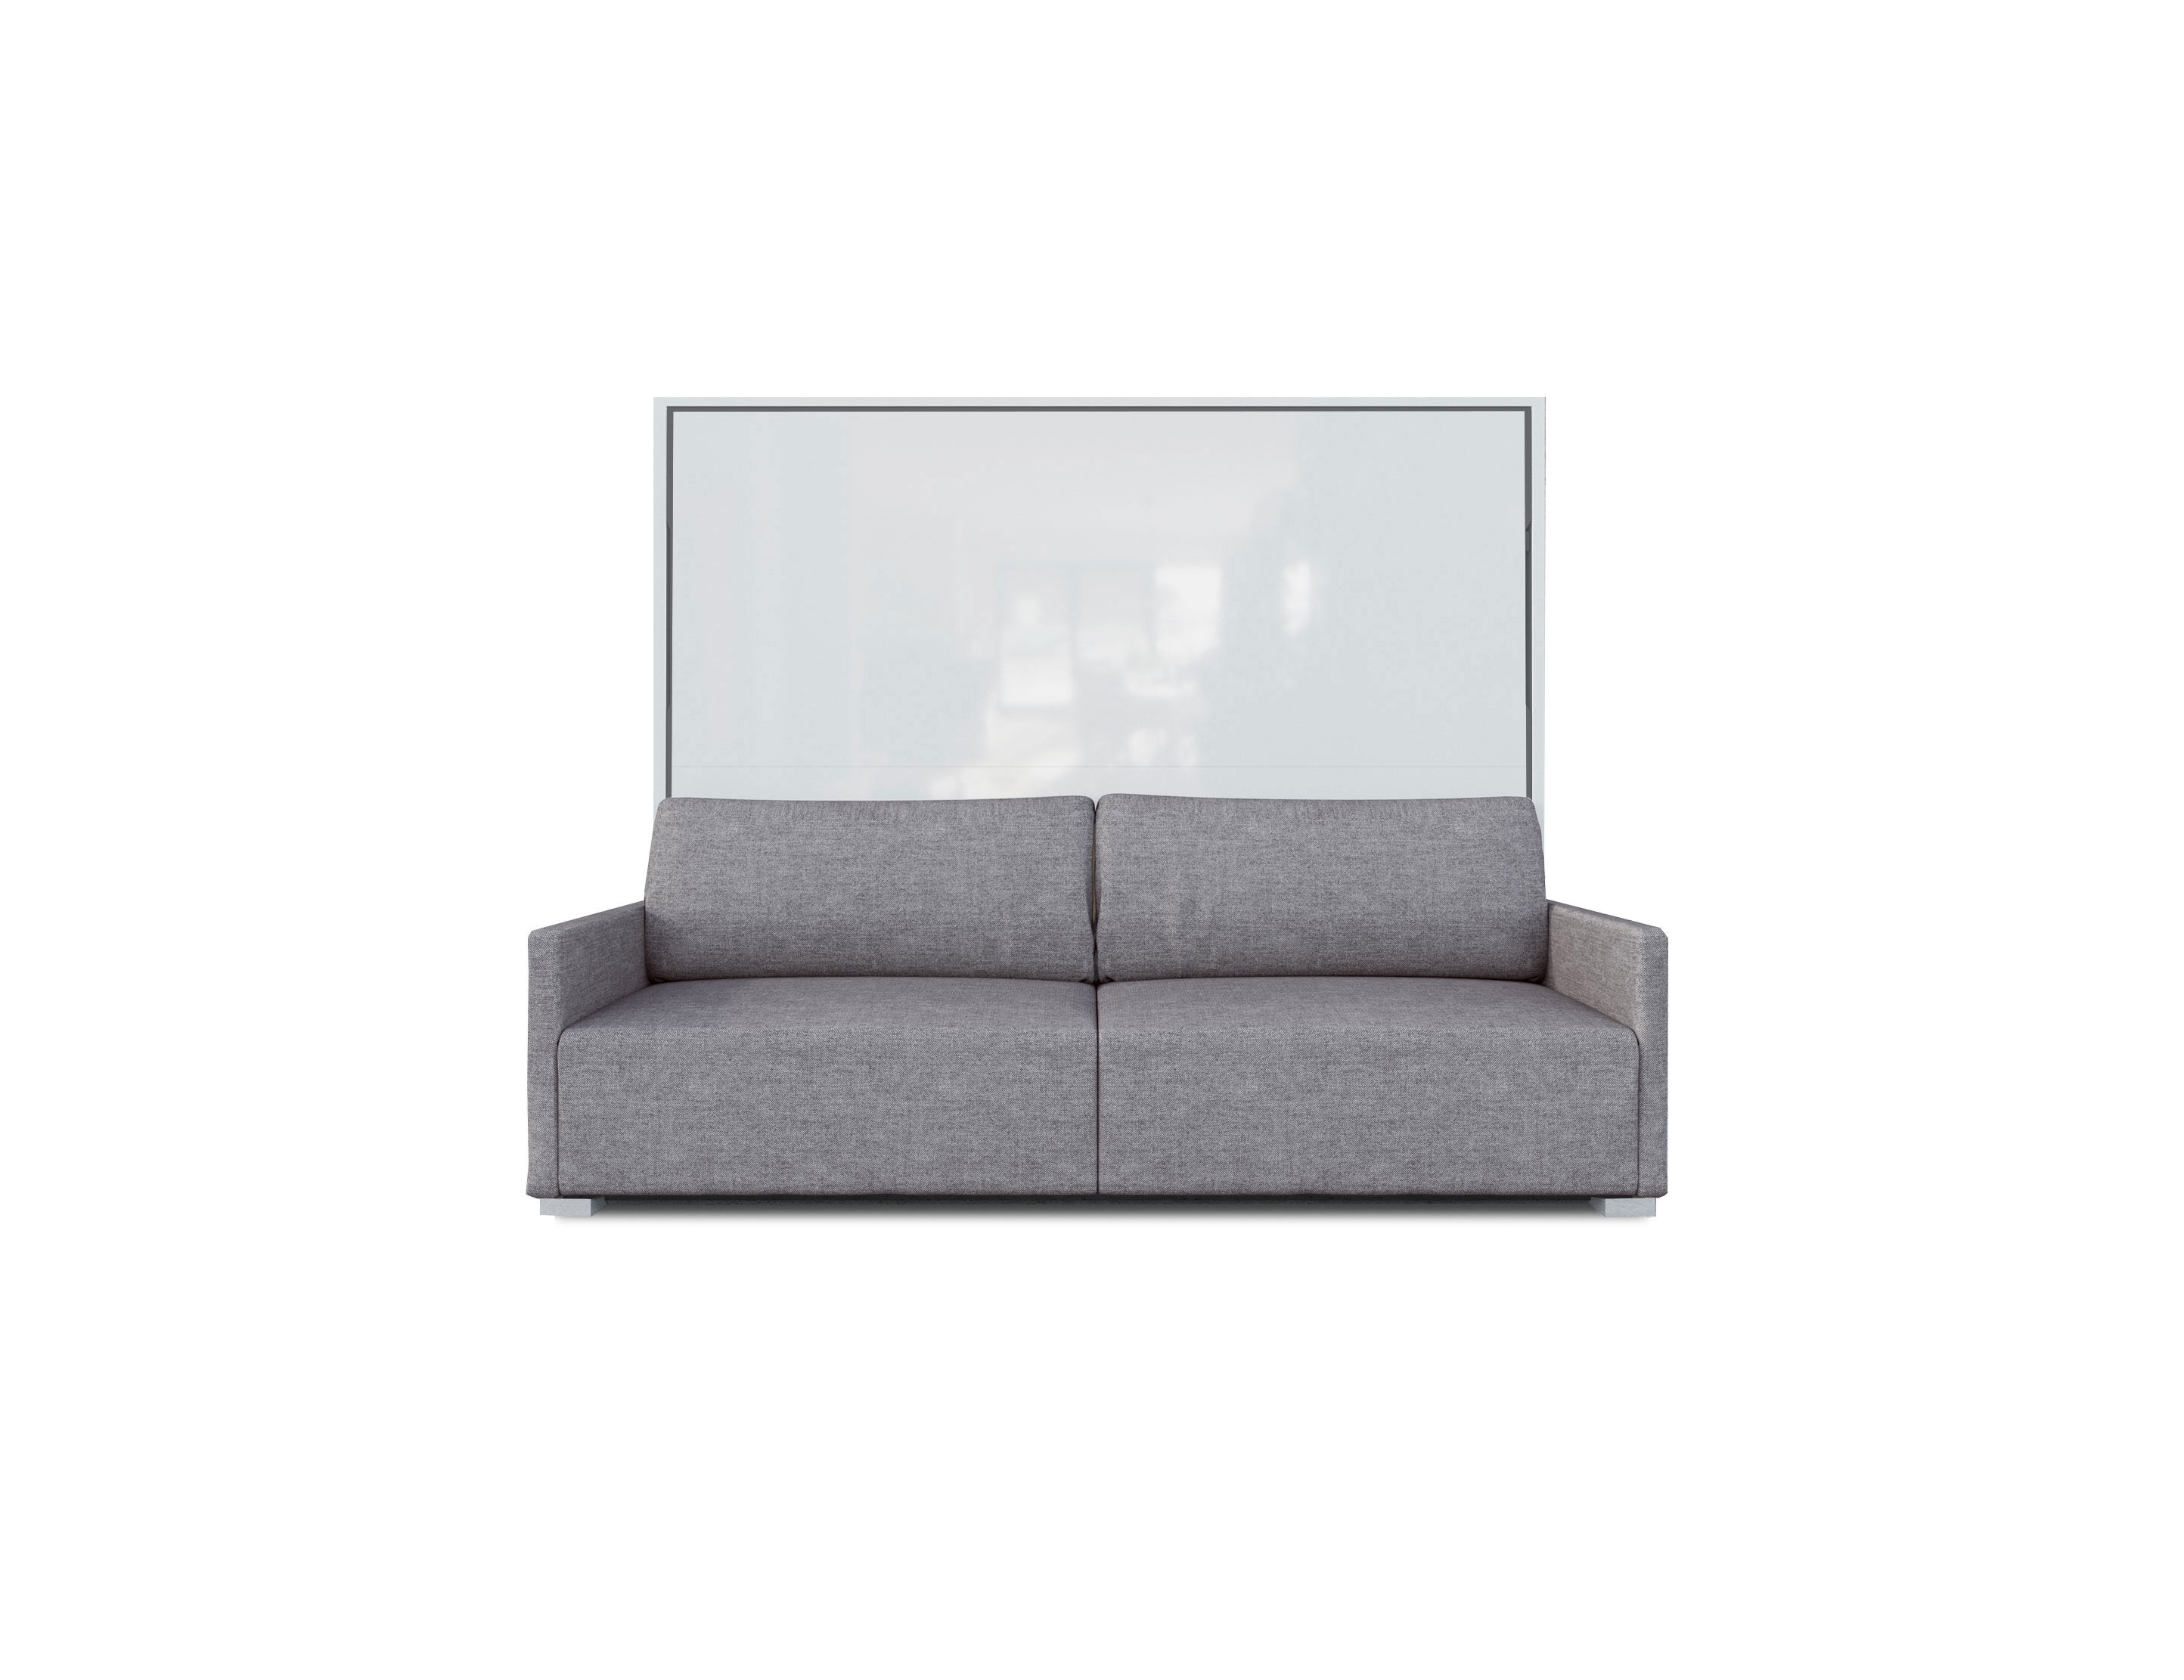 Picture of: Murphysofa Clean Horizontal Queen Expand Furniture Folding Tables Smarter Wall Beds Space Savers